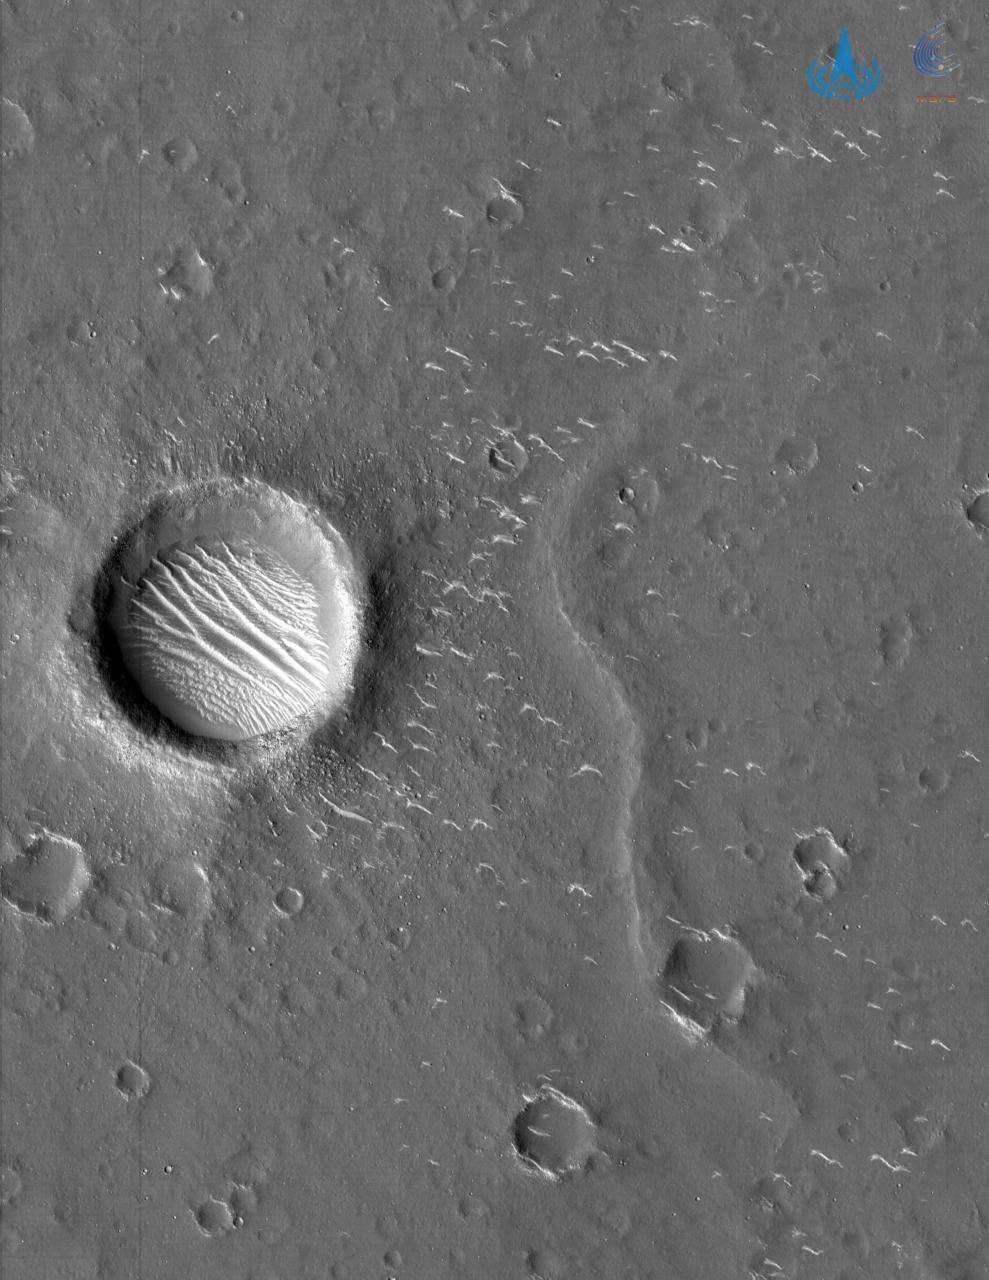 CNSA images of Mars surface